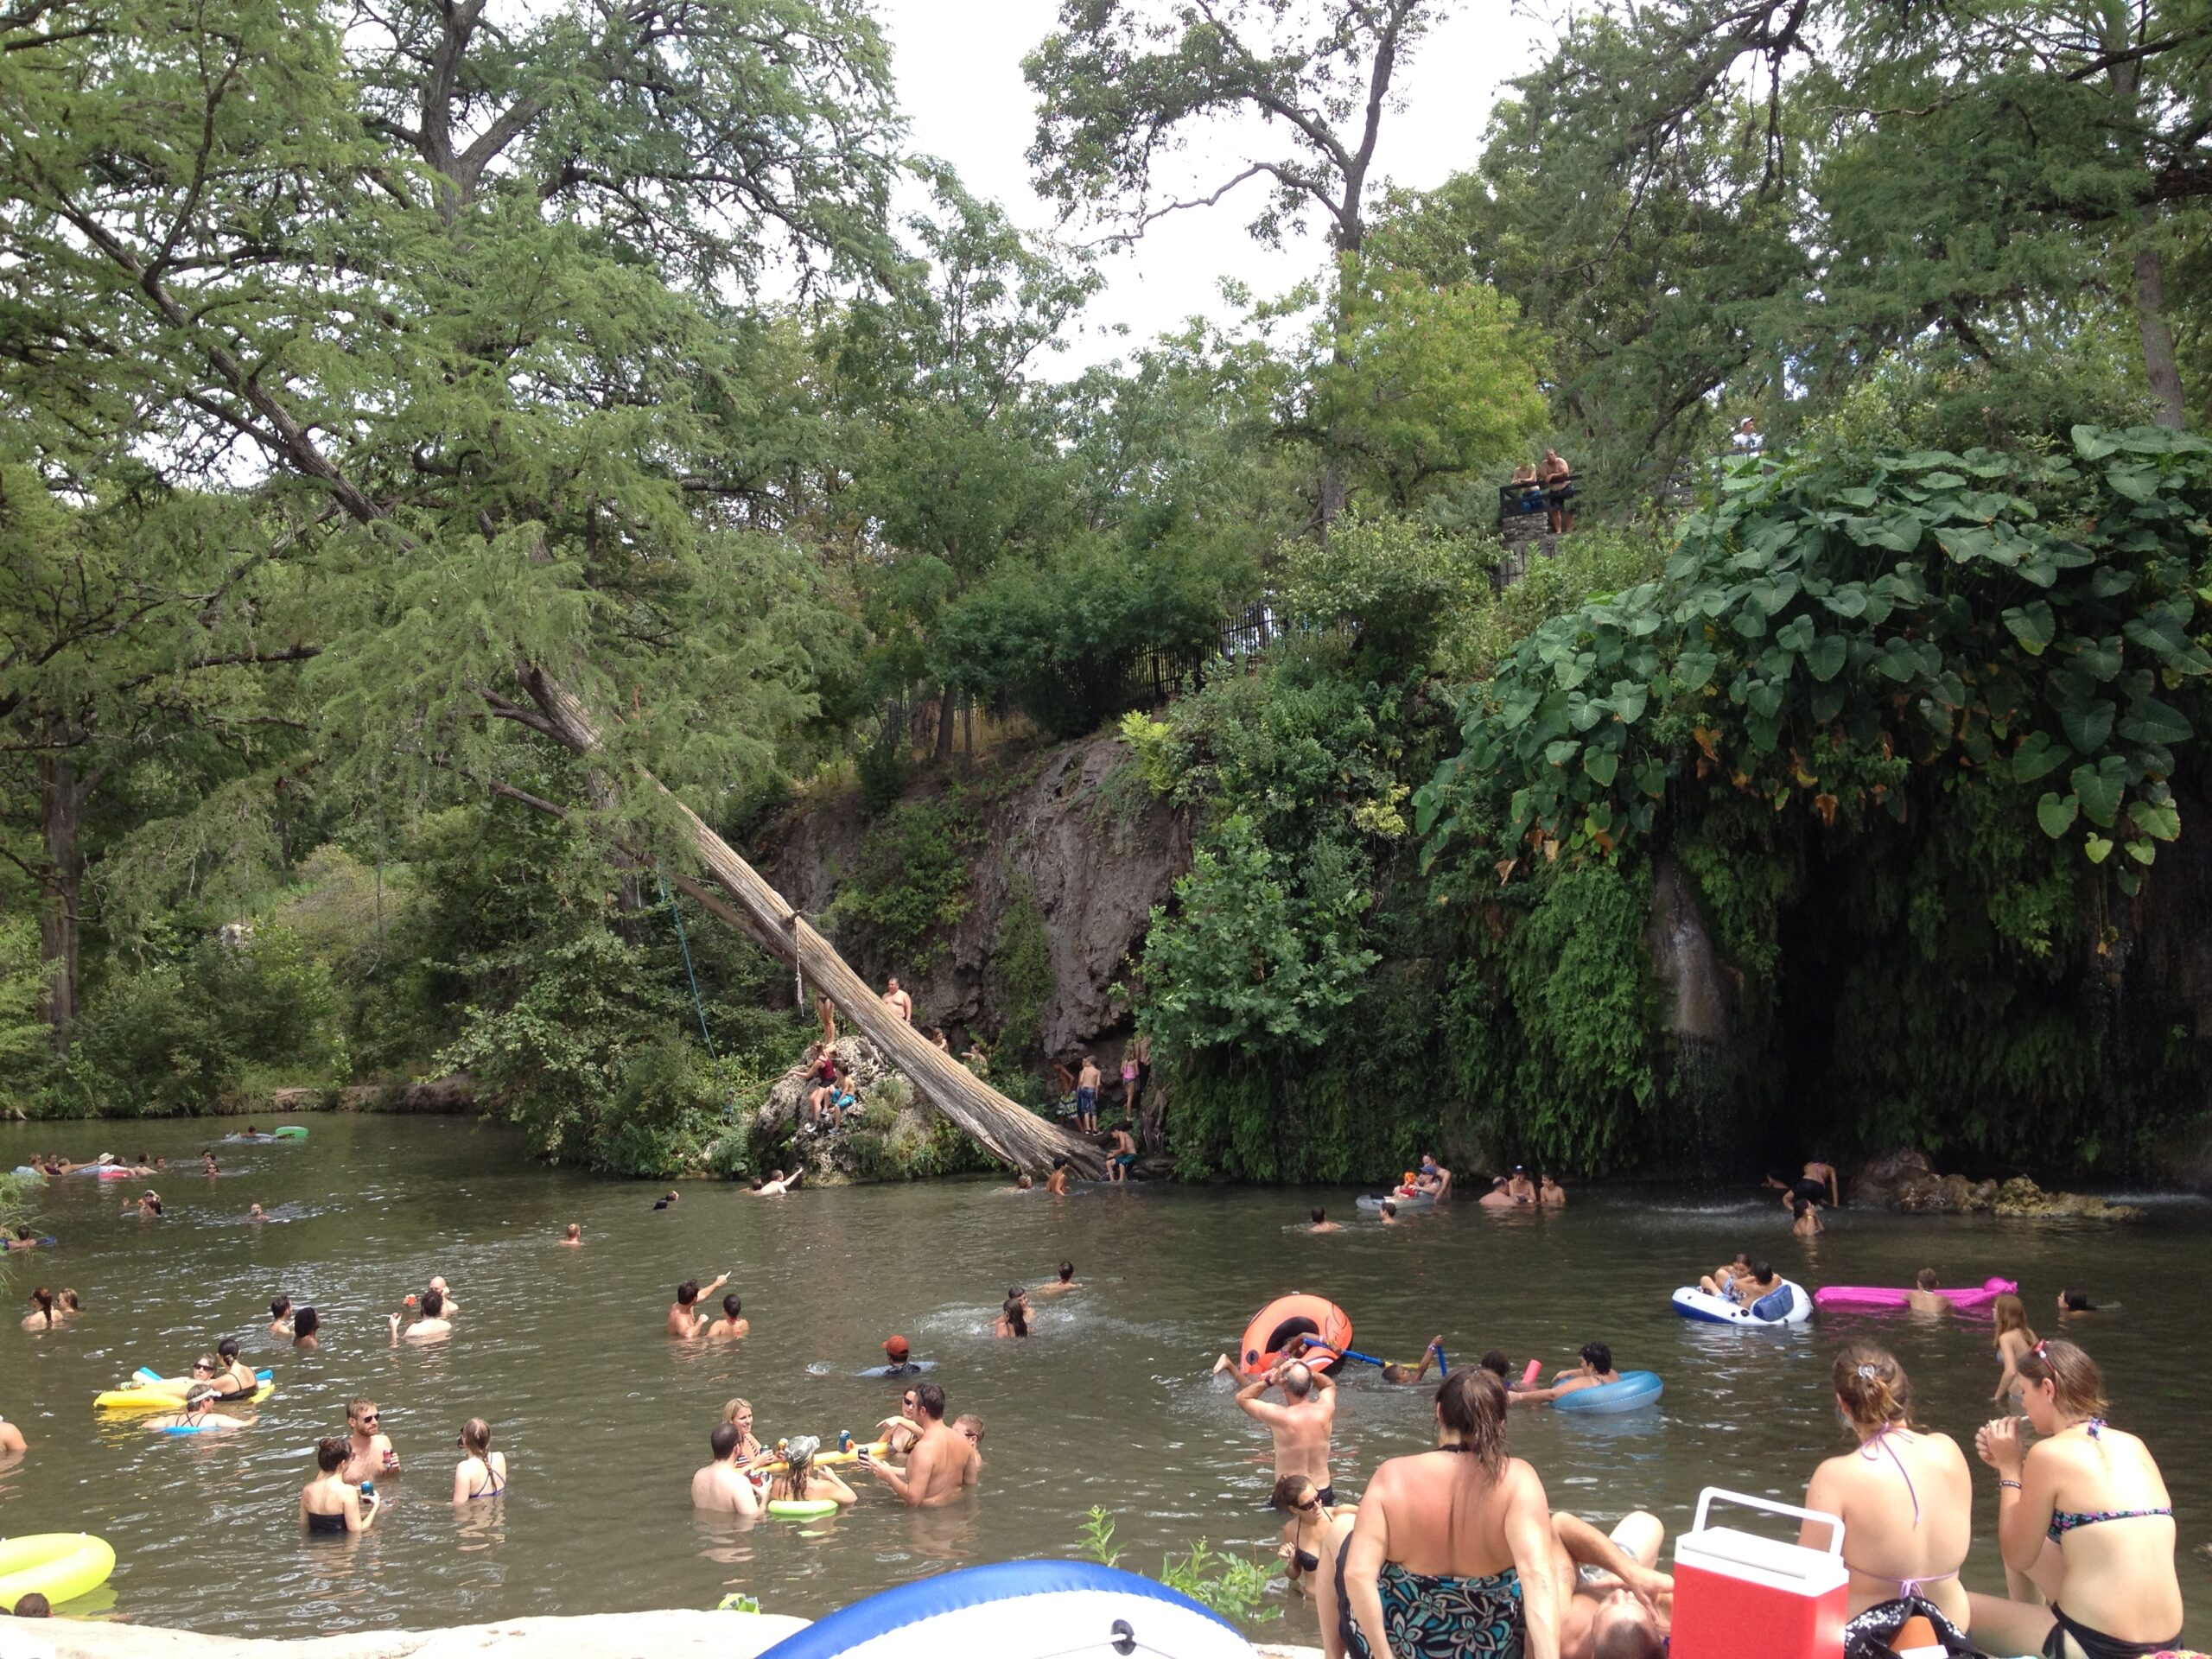 Krause Springs in Spicewood